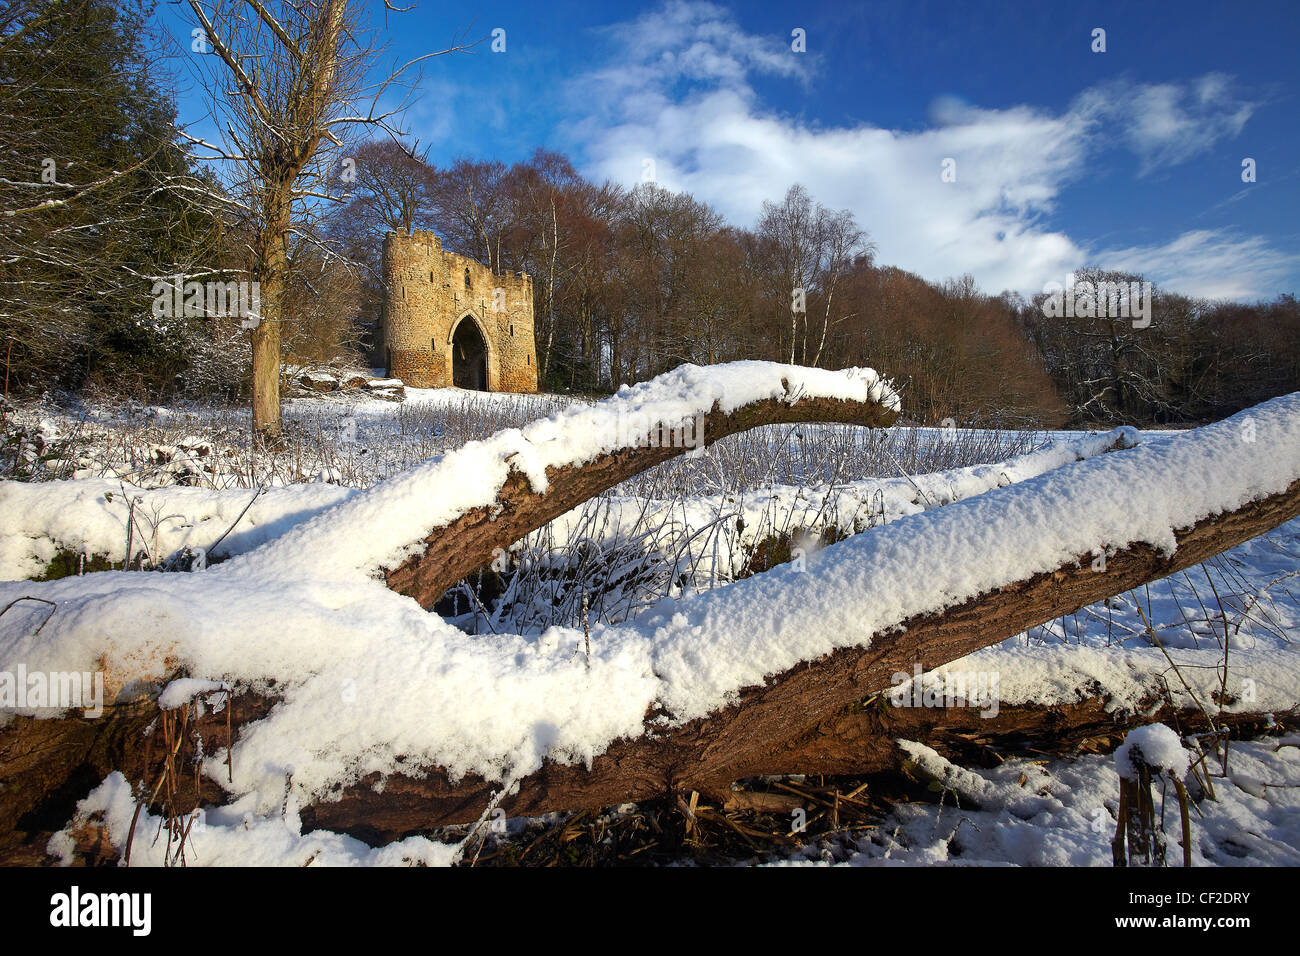 Snow covering the ground around the castle in Roundhay Park, one of the biggest city parks in Europe. The castle Stock Photo